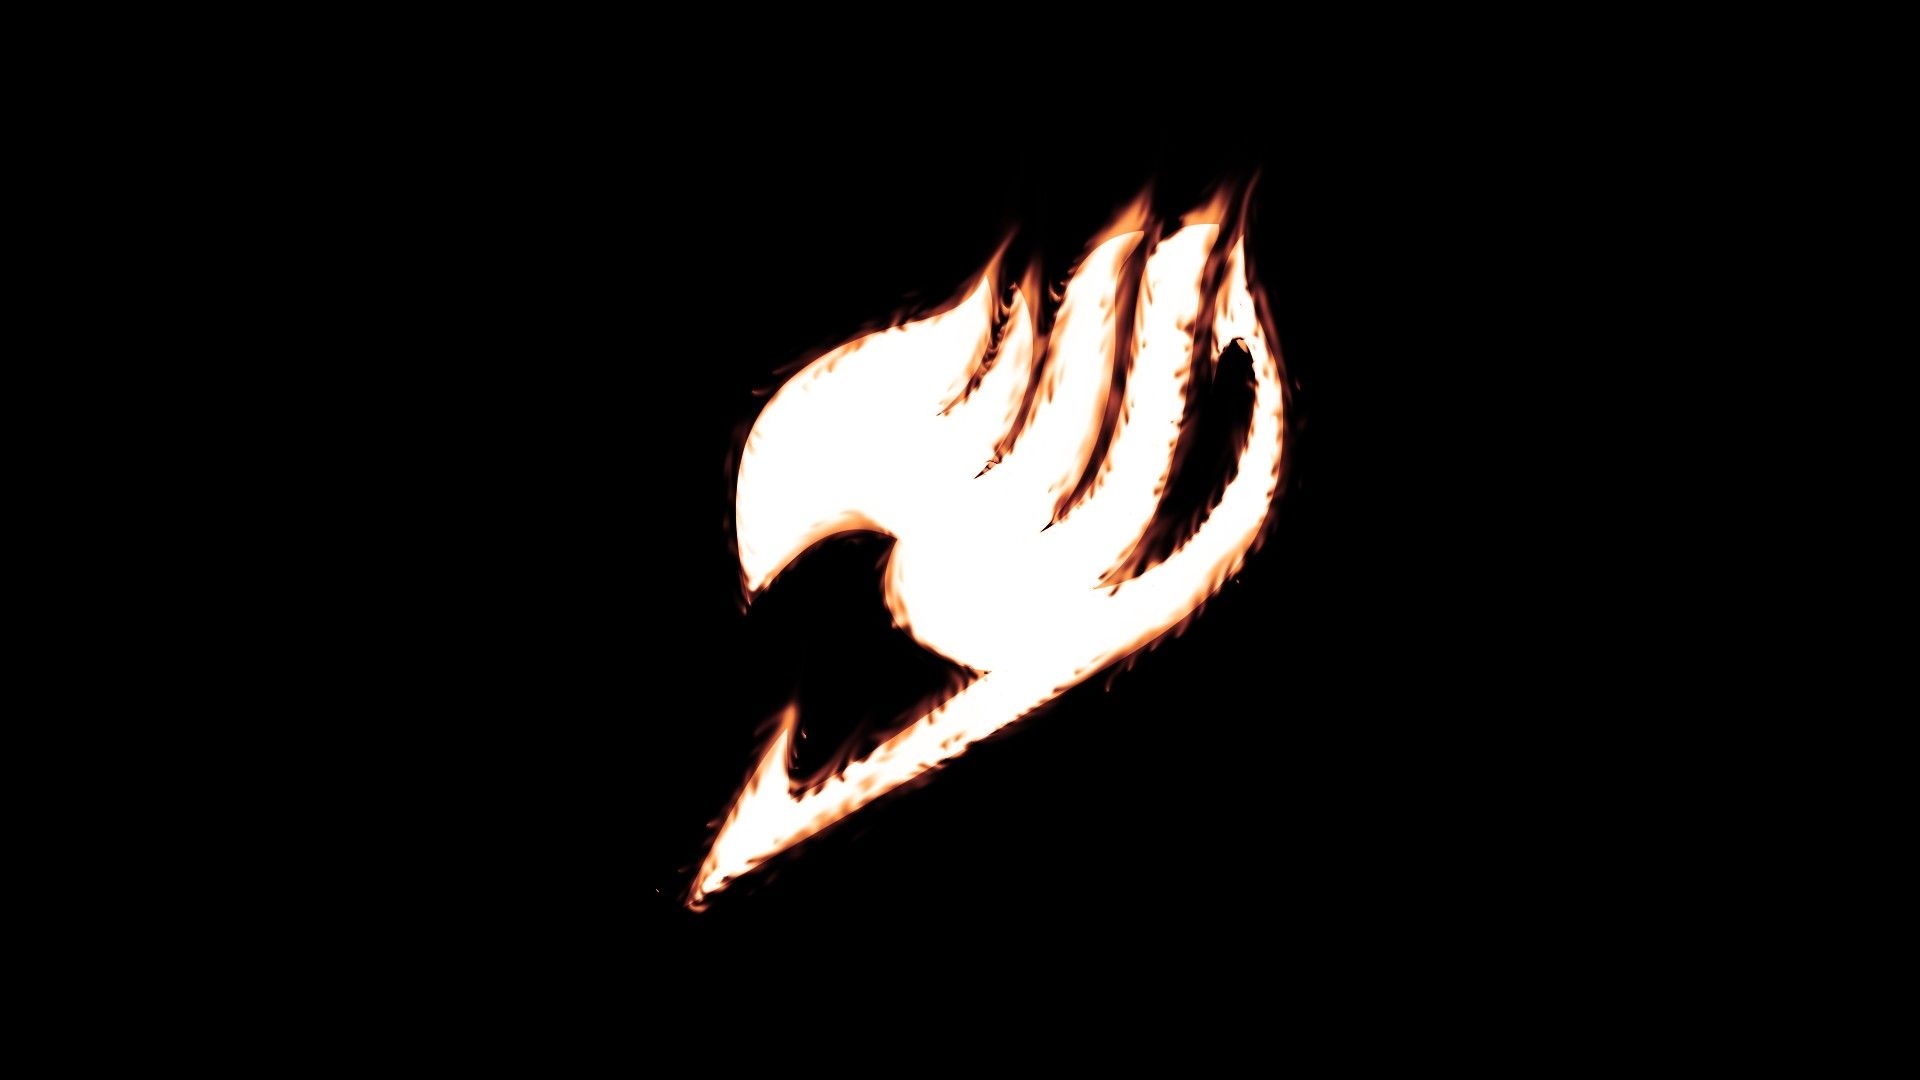 Fairy Tail Anime Logo Wallpapers Top Free Fairy Tail Anime